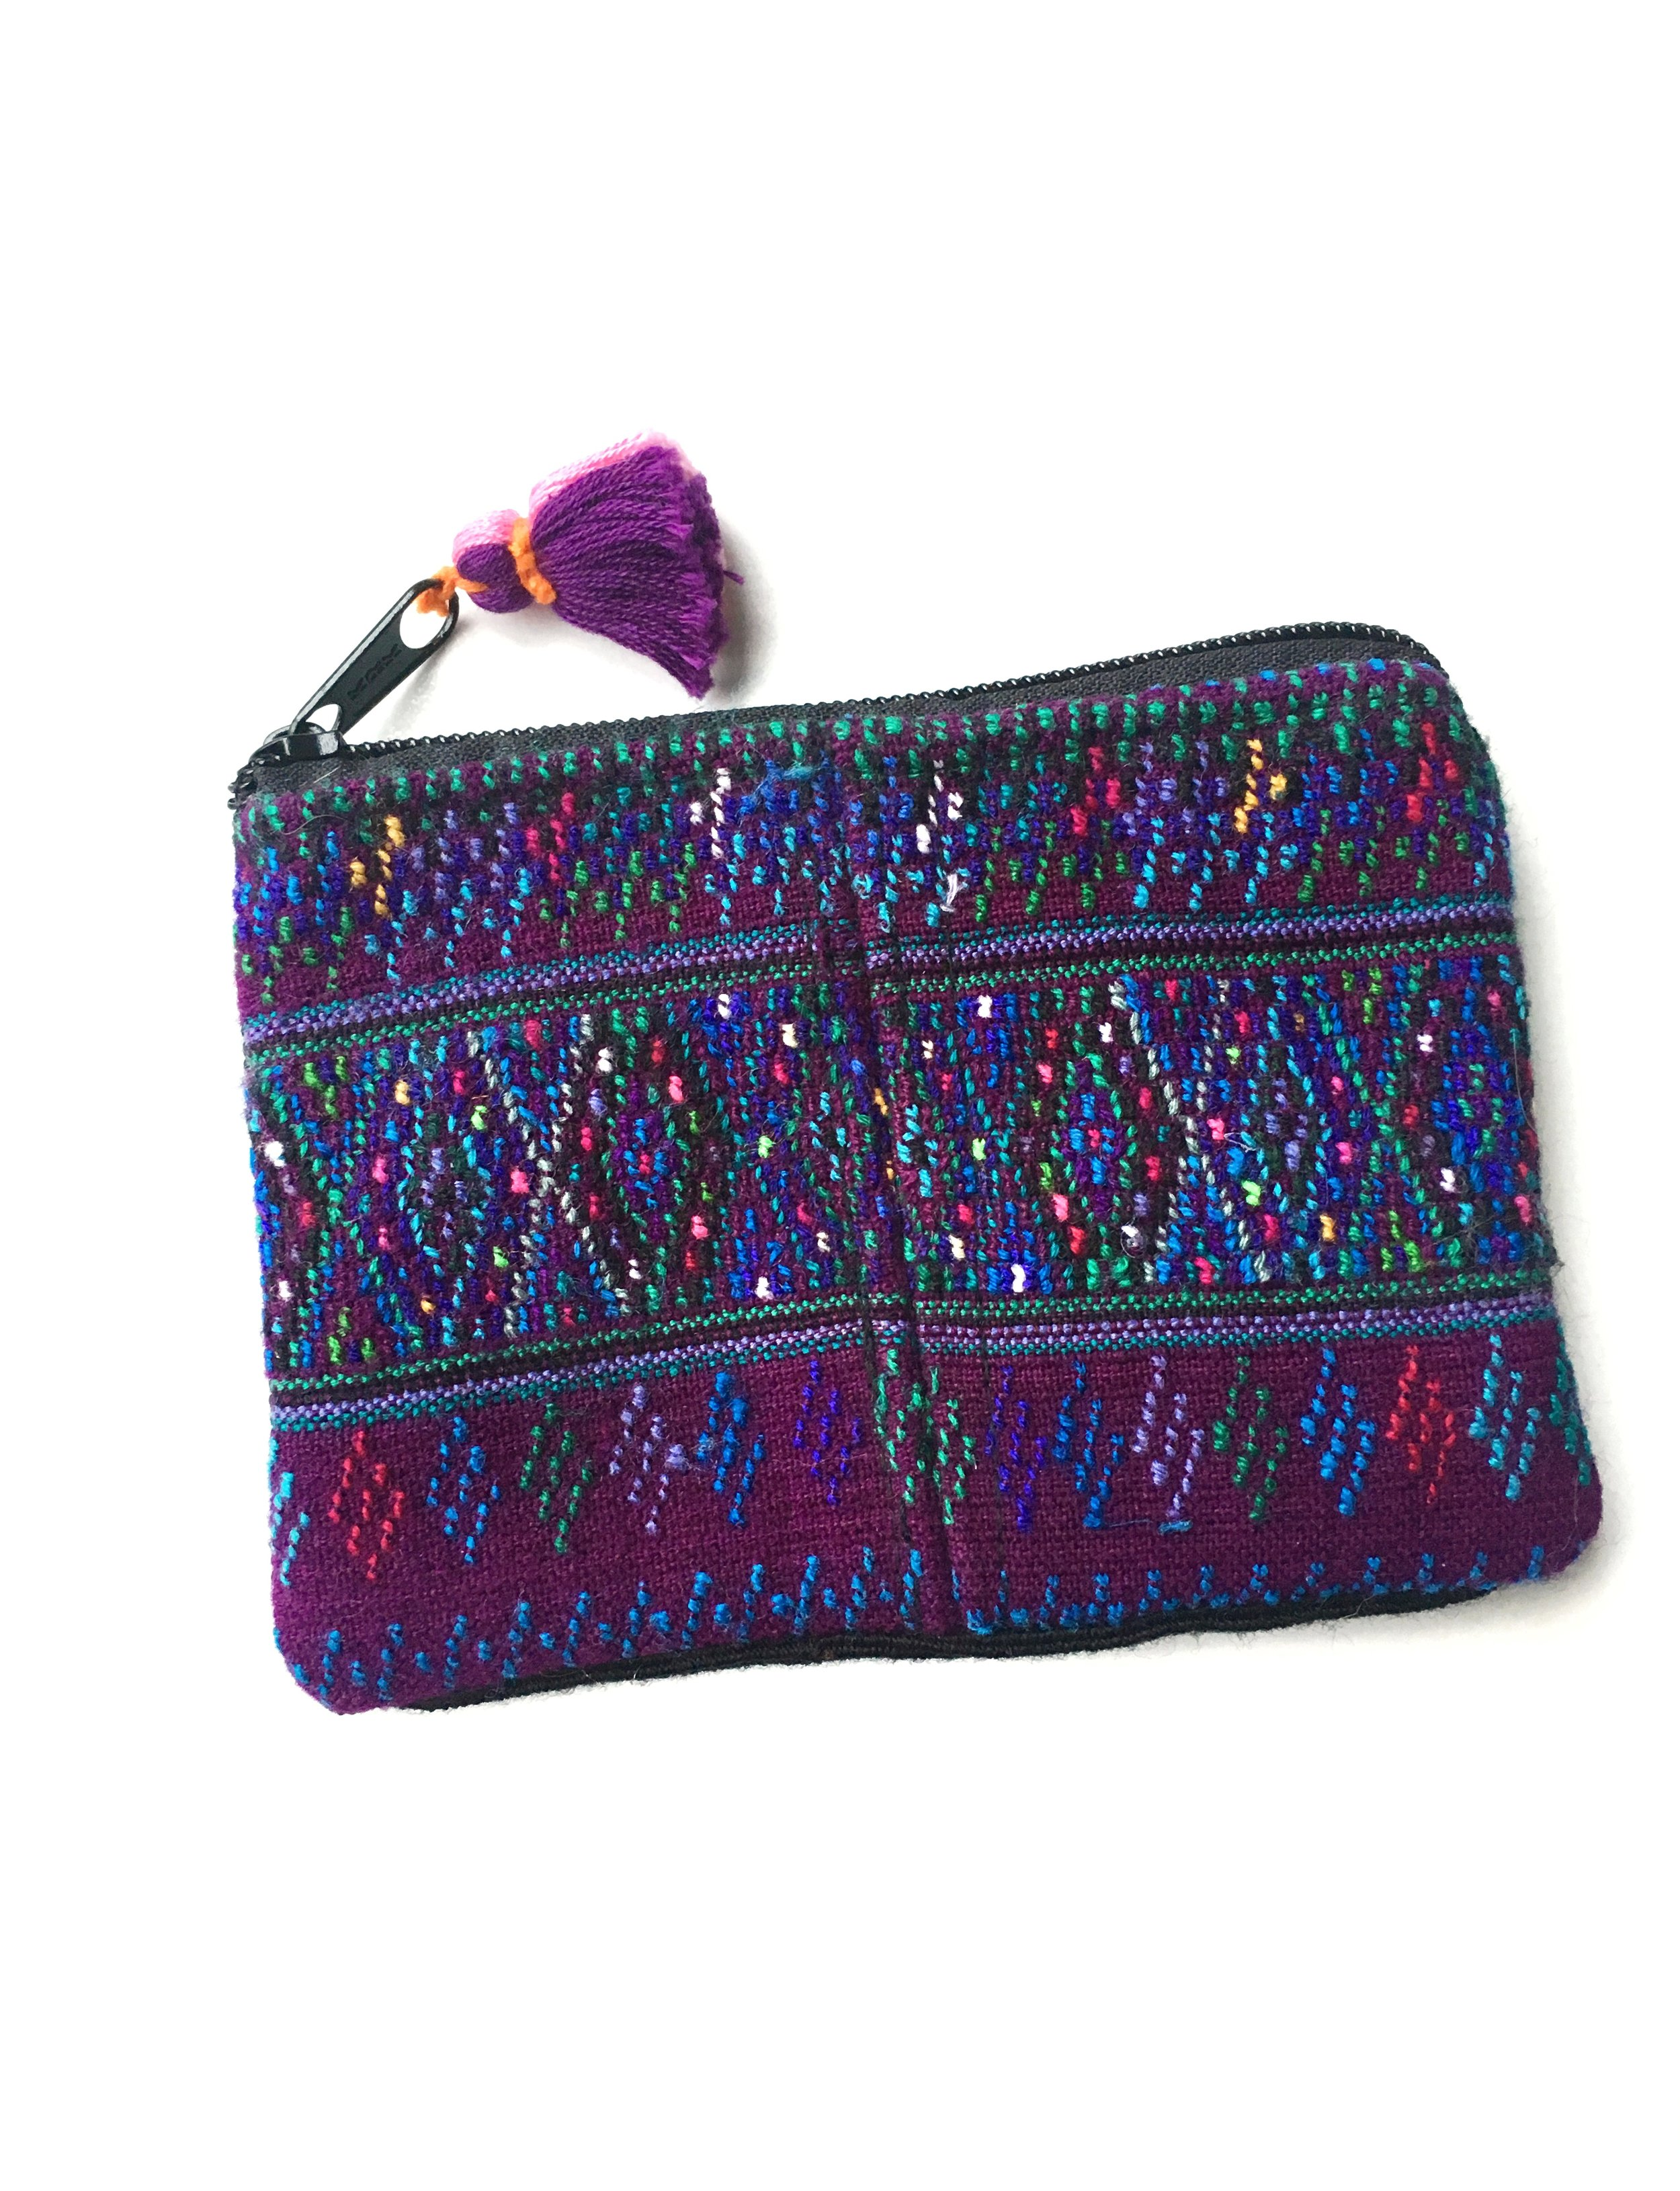 NOMAD COIN POUCH - PURPLE